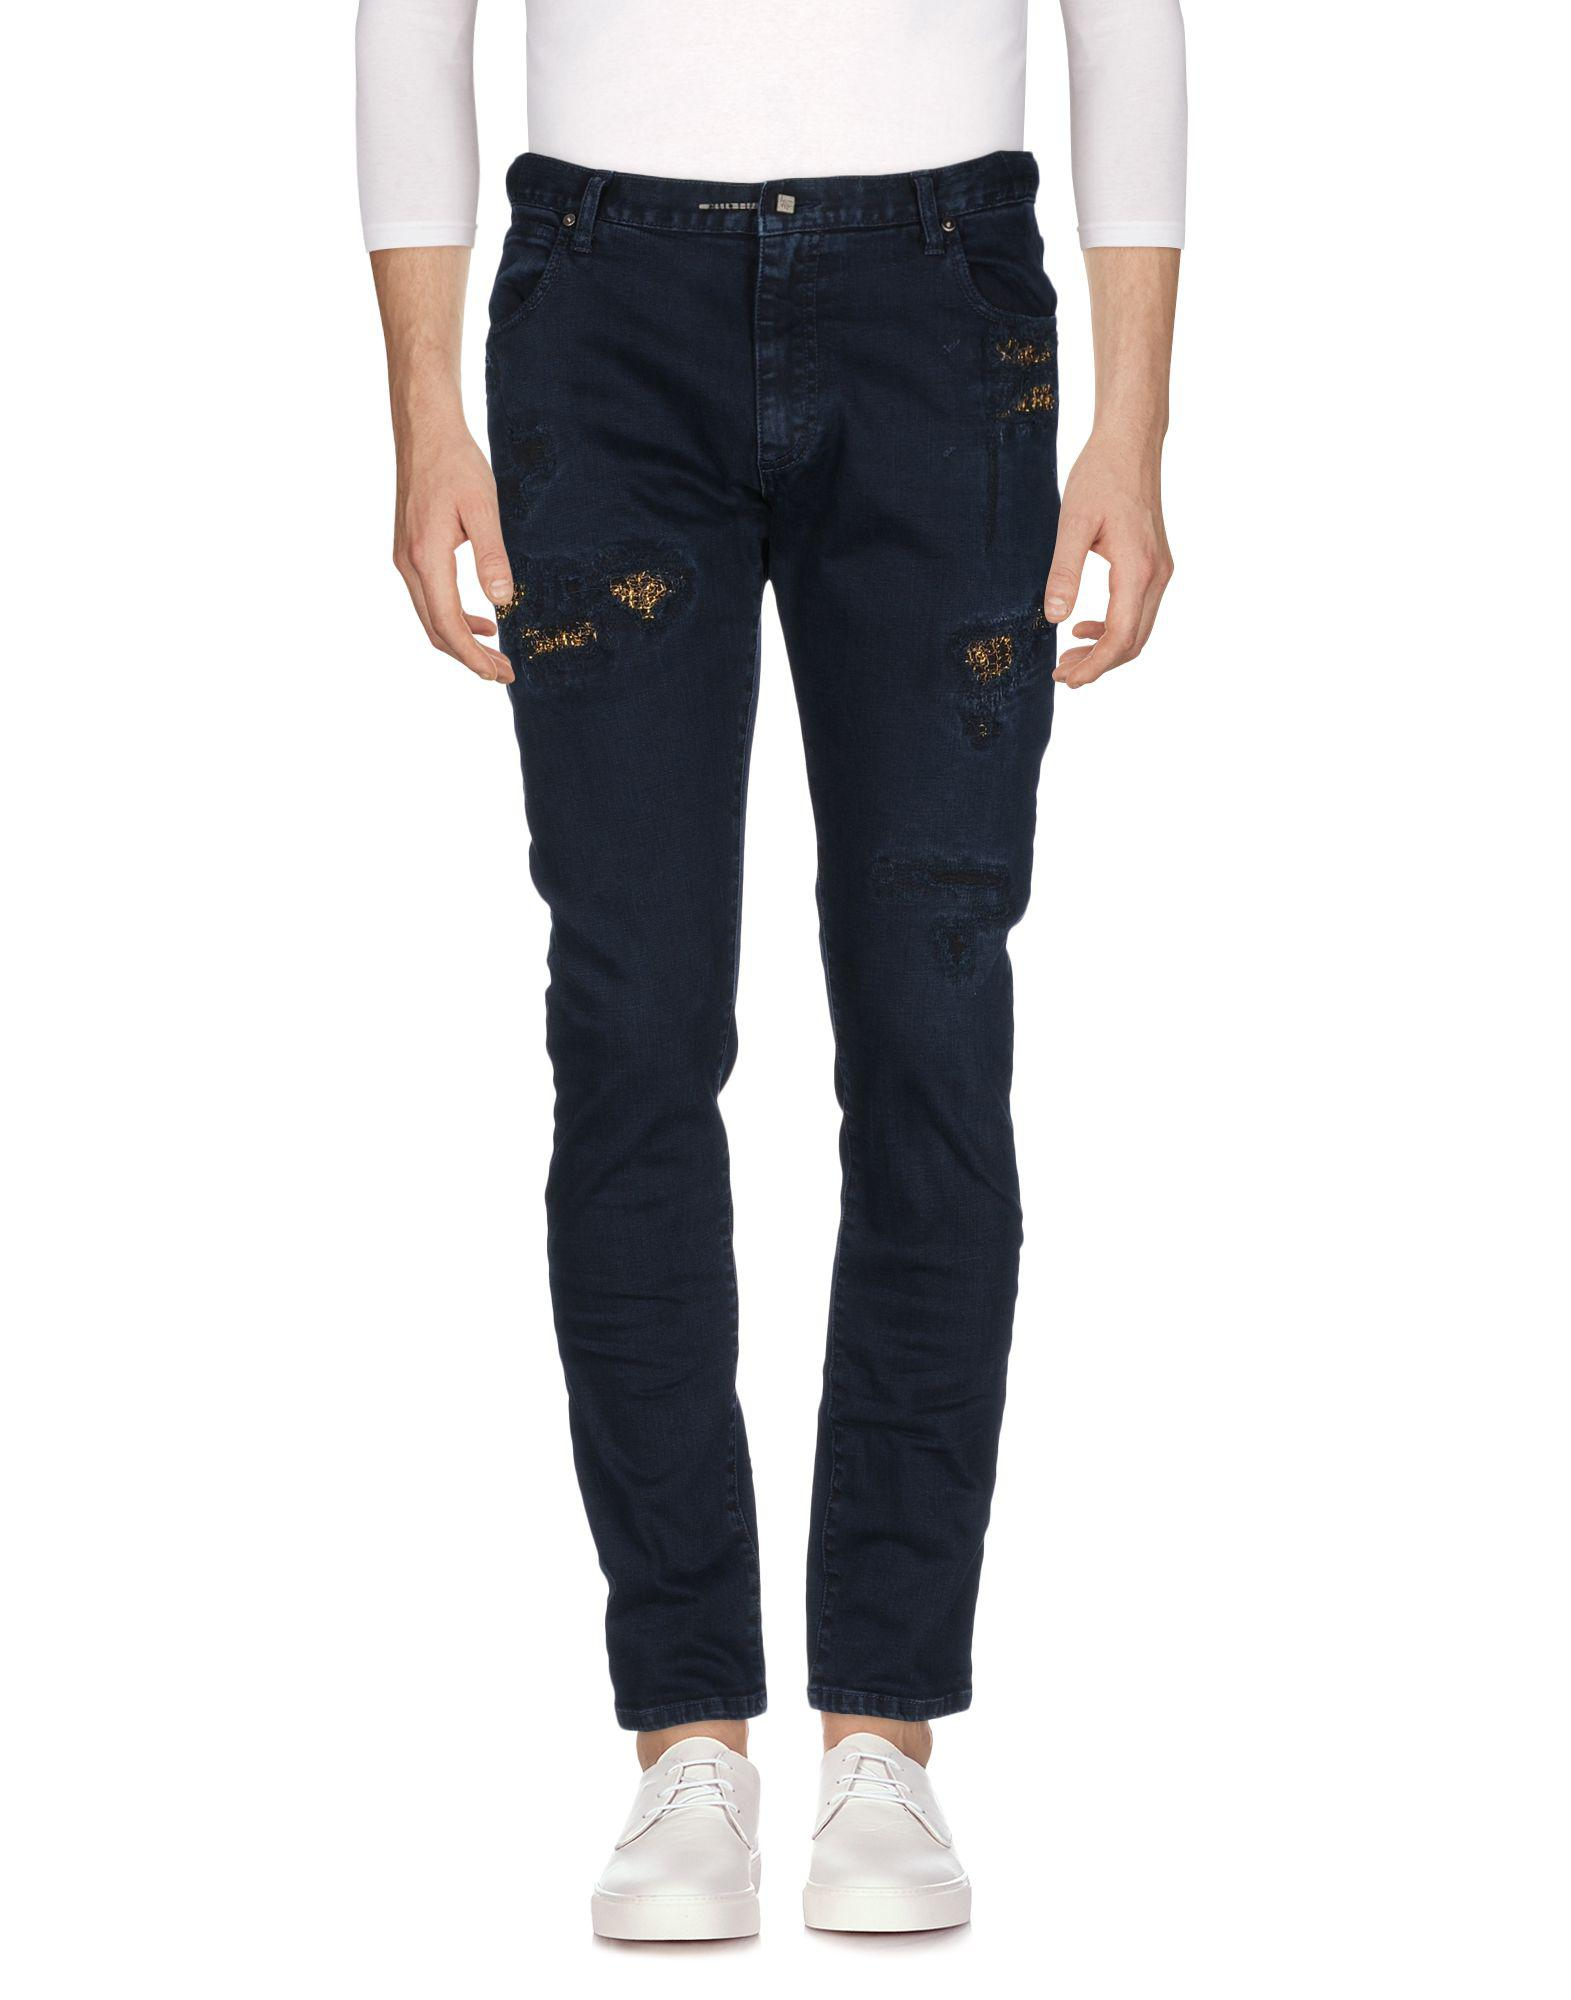 DENIM - Denim trousers Loha Vete